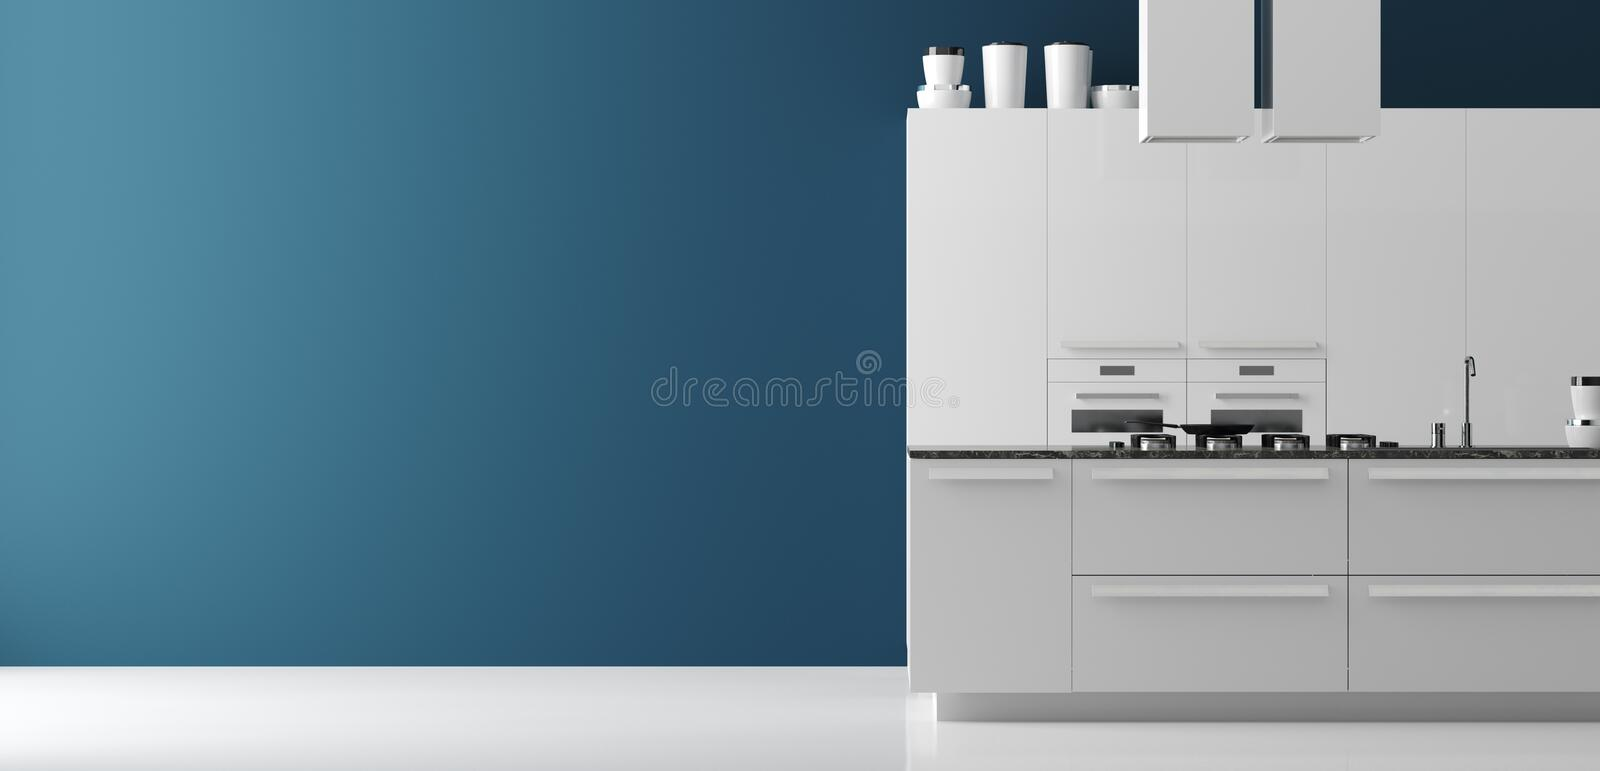 Contemporary kitchen interior panoramic view, wall mock up, modern style stock illustration